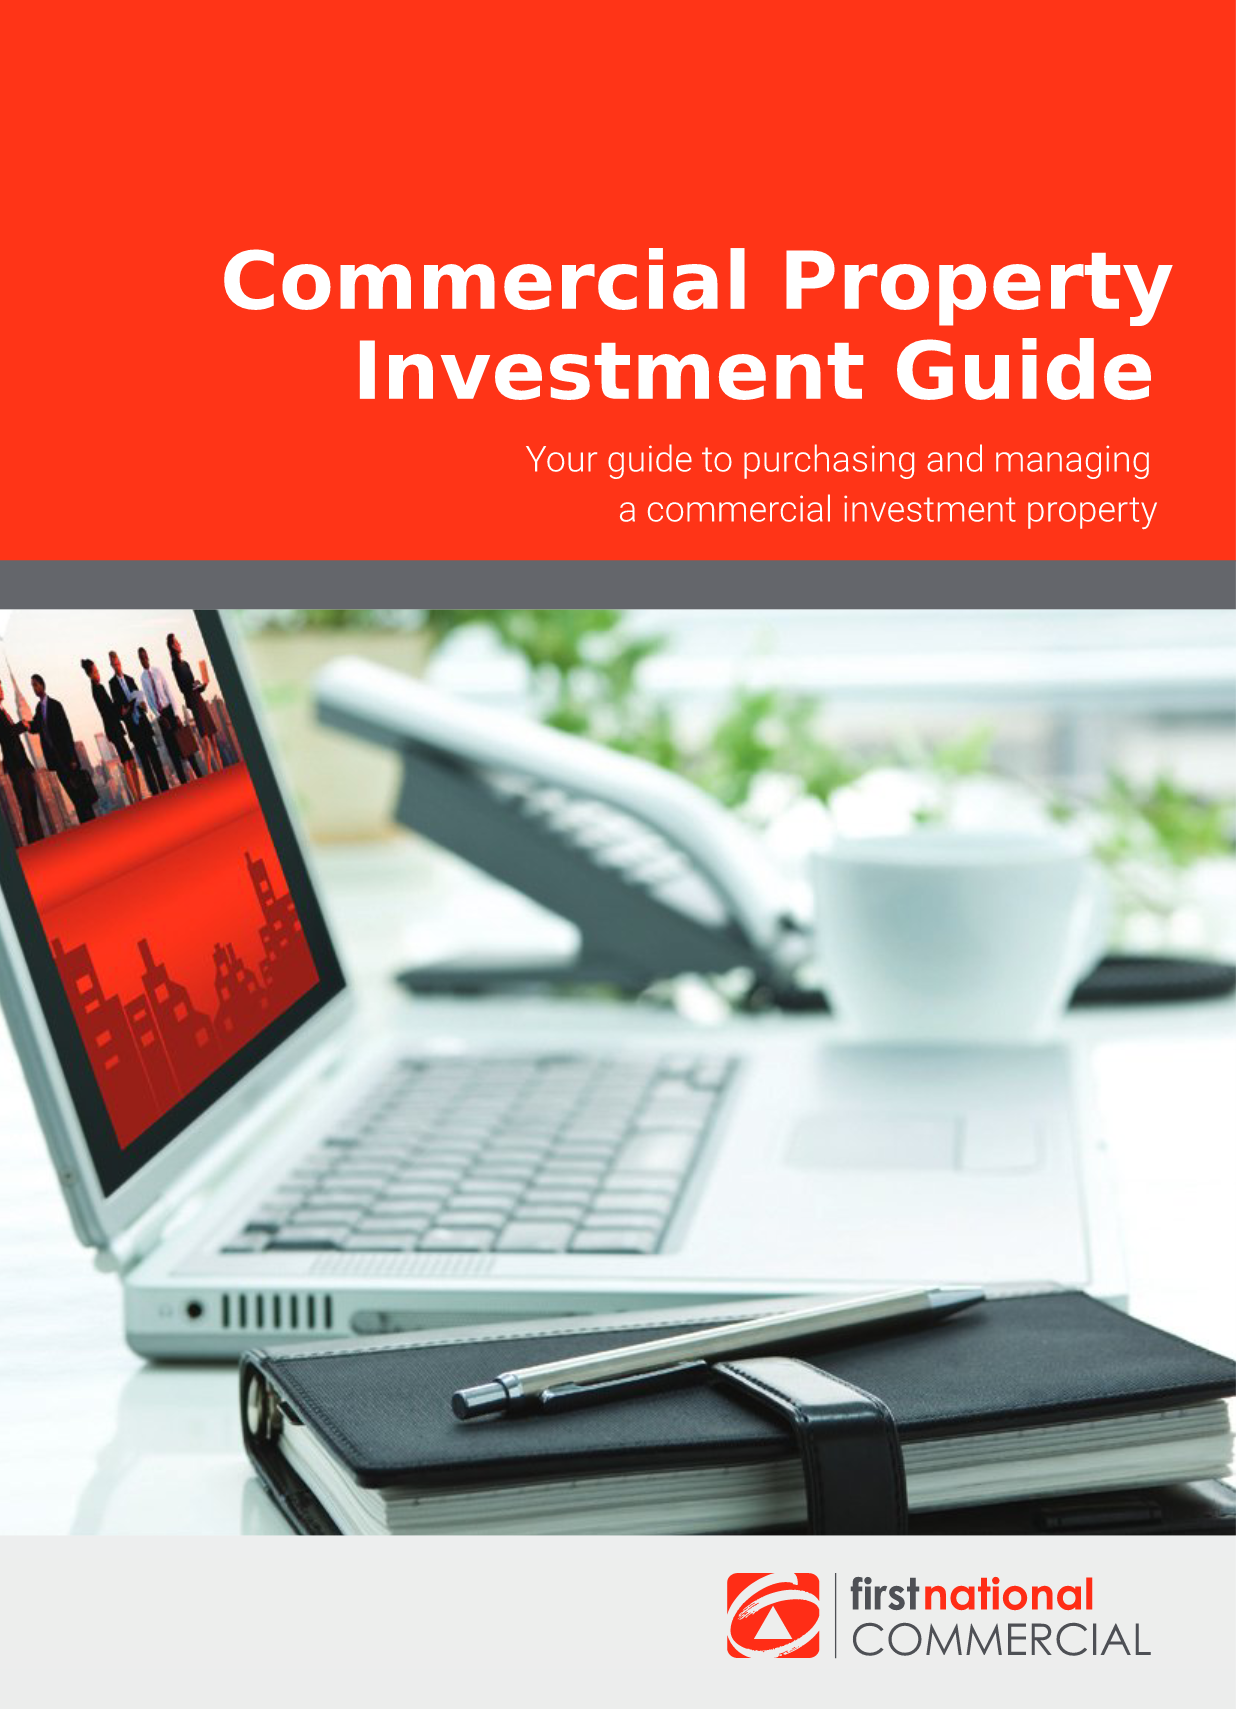 Commercial Property Investment Guide